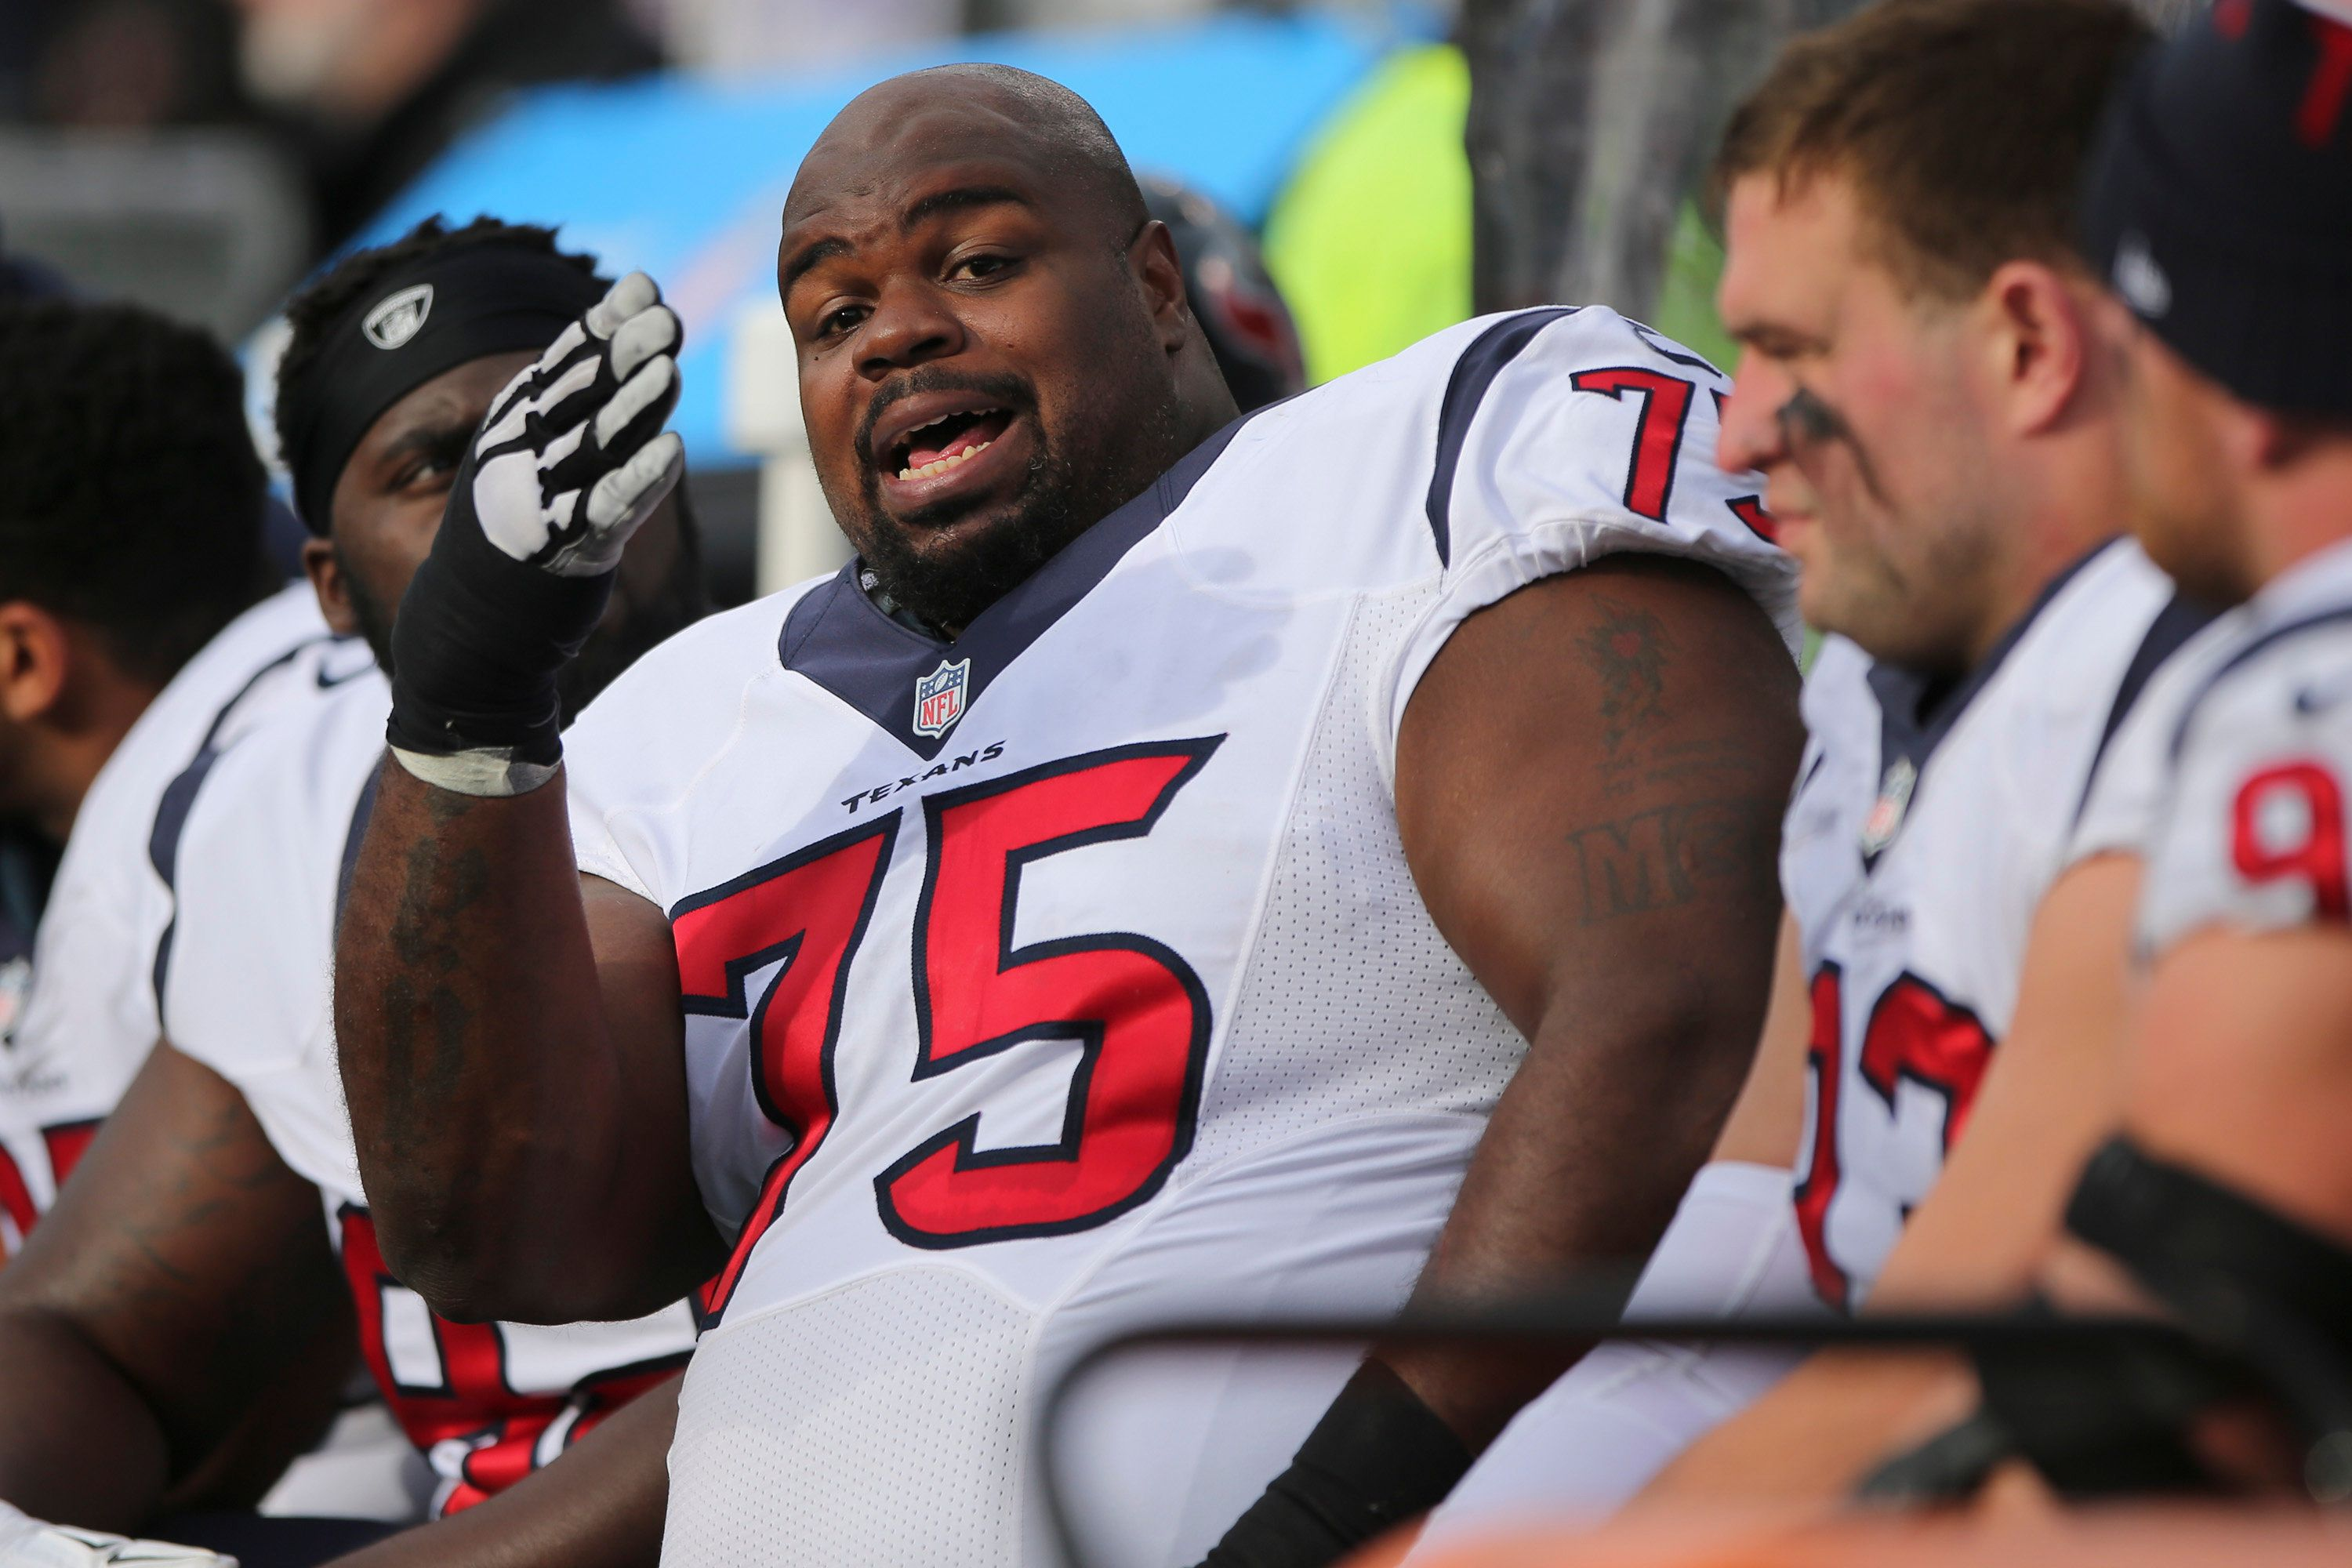 The same weight that makes the Houston Texans' Vince Wilfork a formidable nose tacklecould hurt his long-term health.